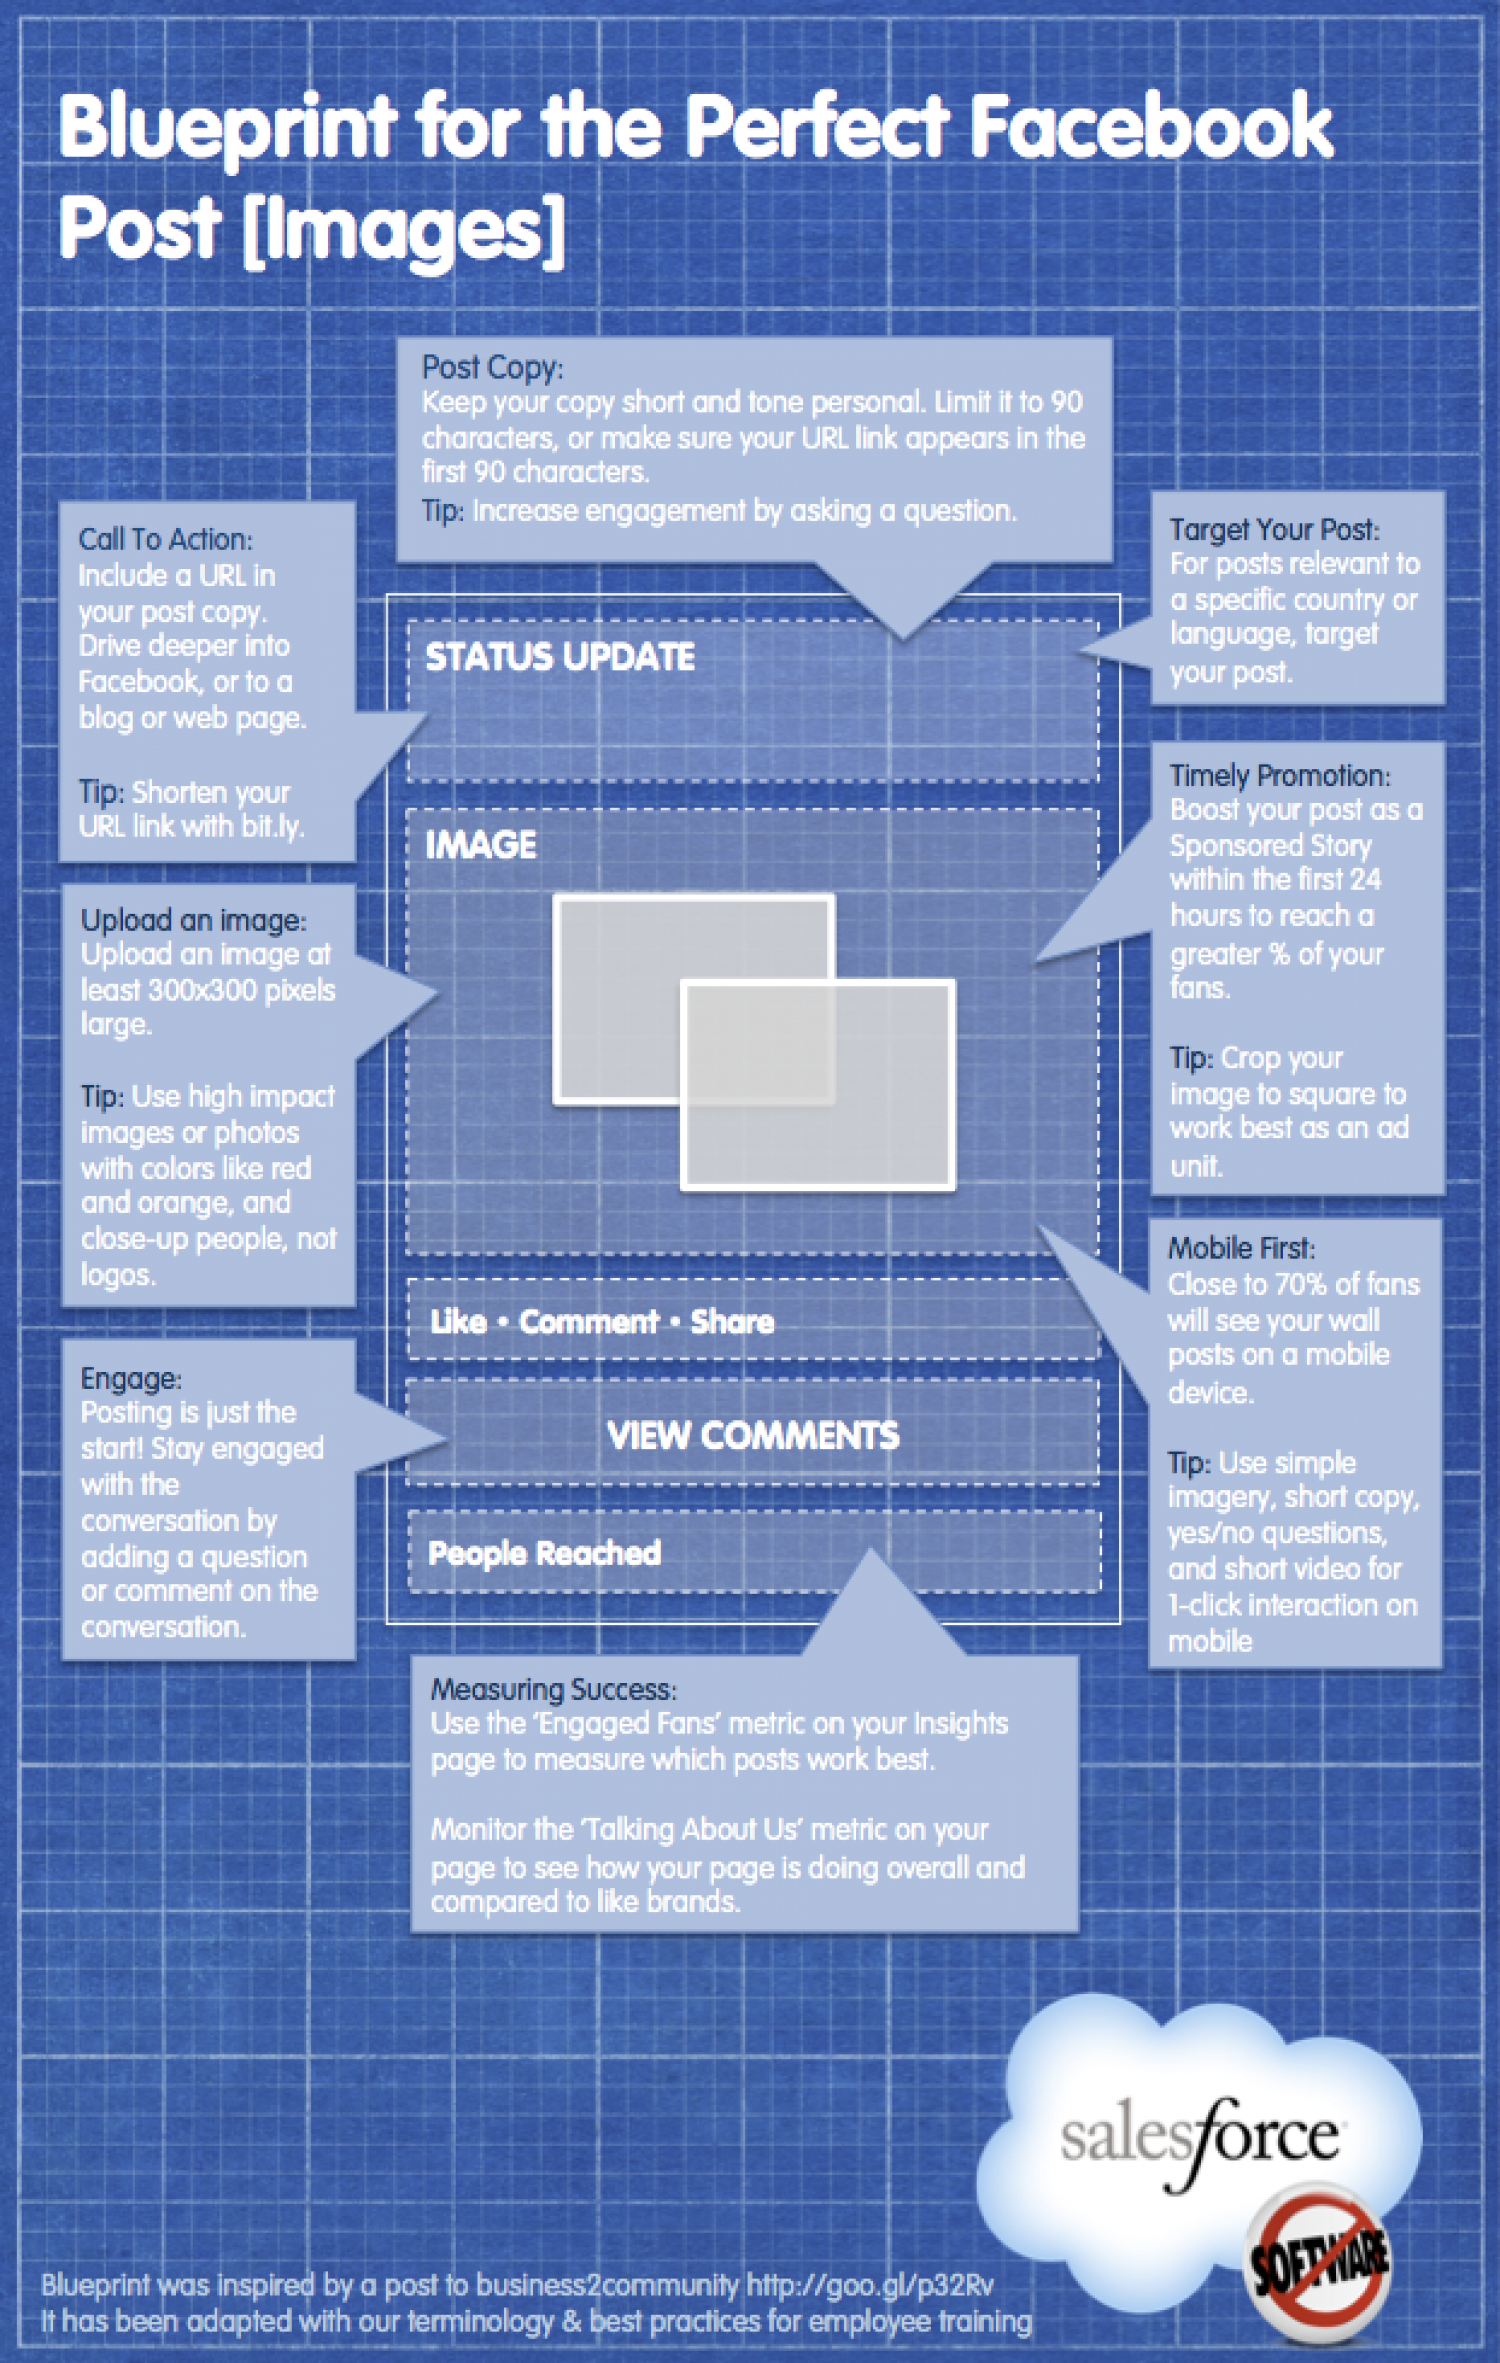 Blueprint for the Perfect Facebook Post Infographic